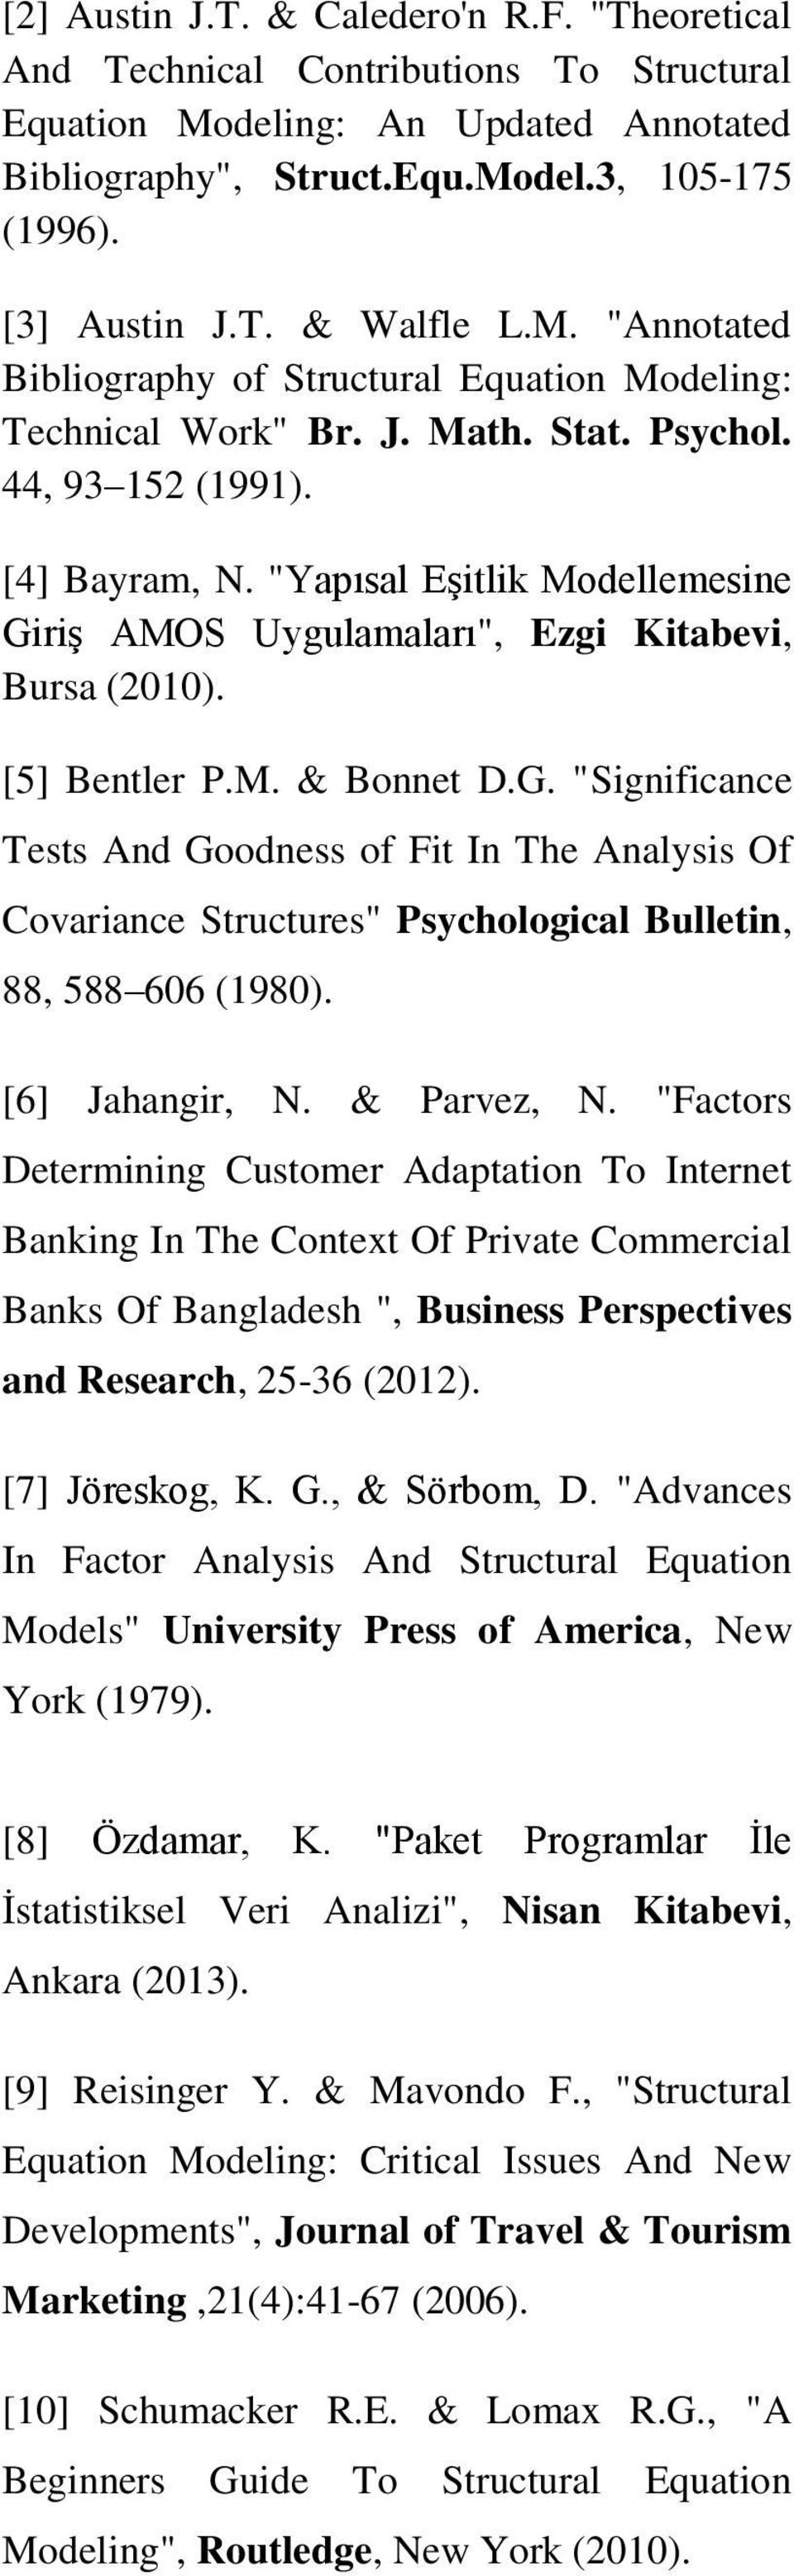 """Yapısal Eşitlik Modellemesine Giriş AMOS Uygulamaları"", Ezgi Kitabevi, Bursa (200). [5] Bentler P.M. & Bonnet D.G. ""Significance Tests And Goodness of Fit In The Analysis Of Covariance Structures"" Psychological Bulletin, 88, 588 606 (980)."